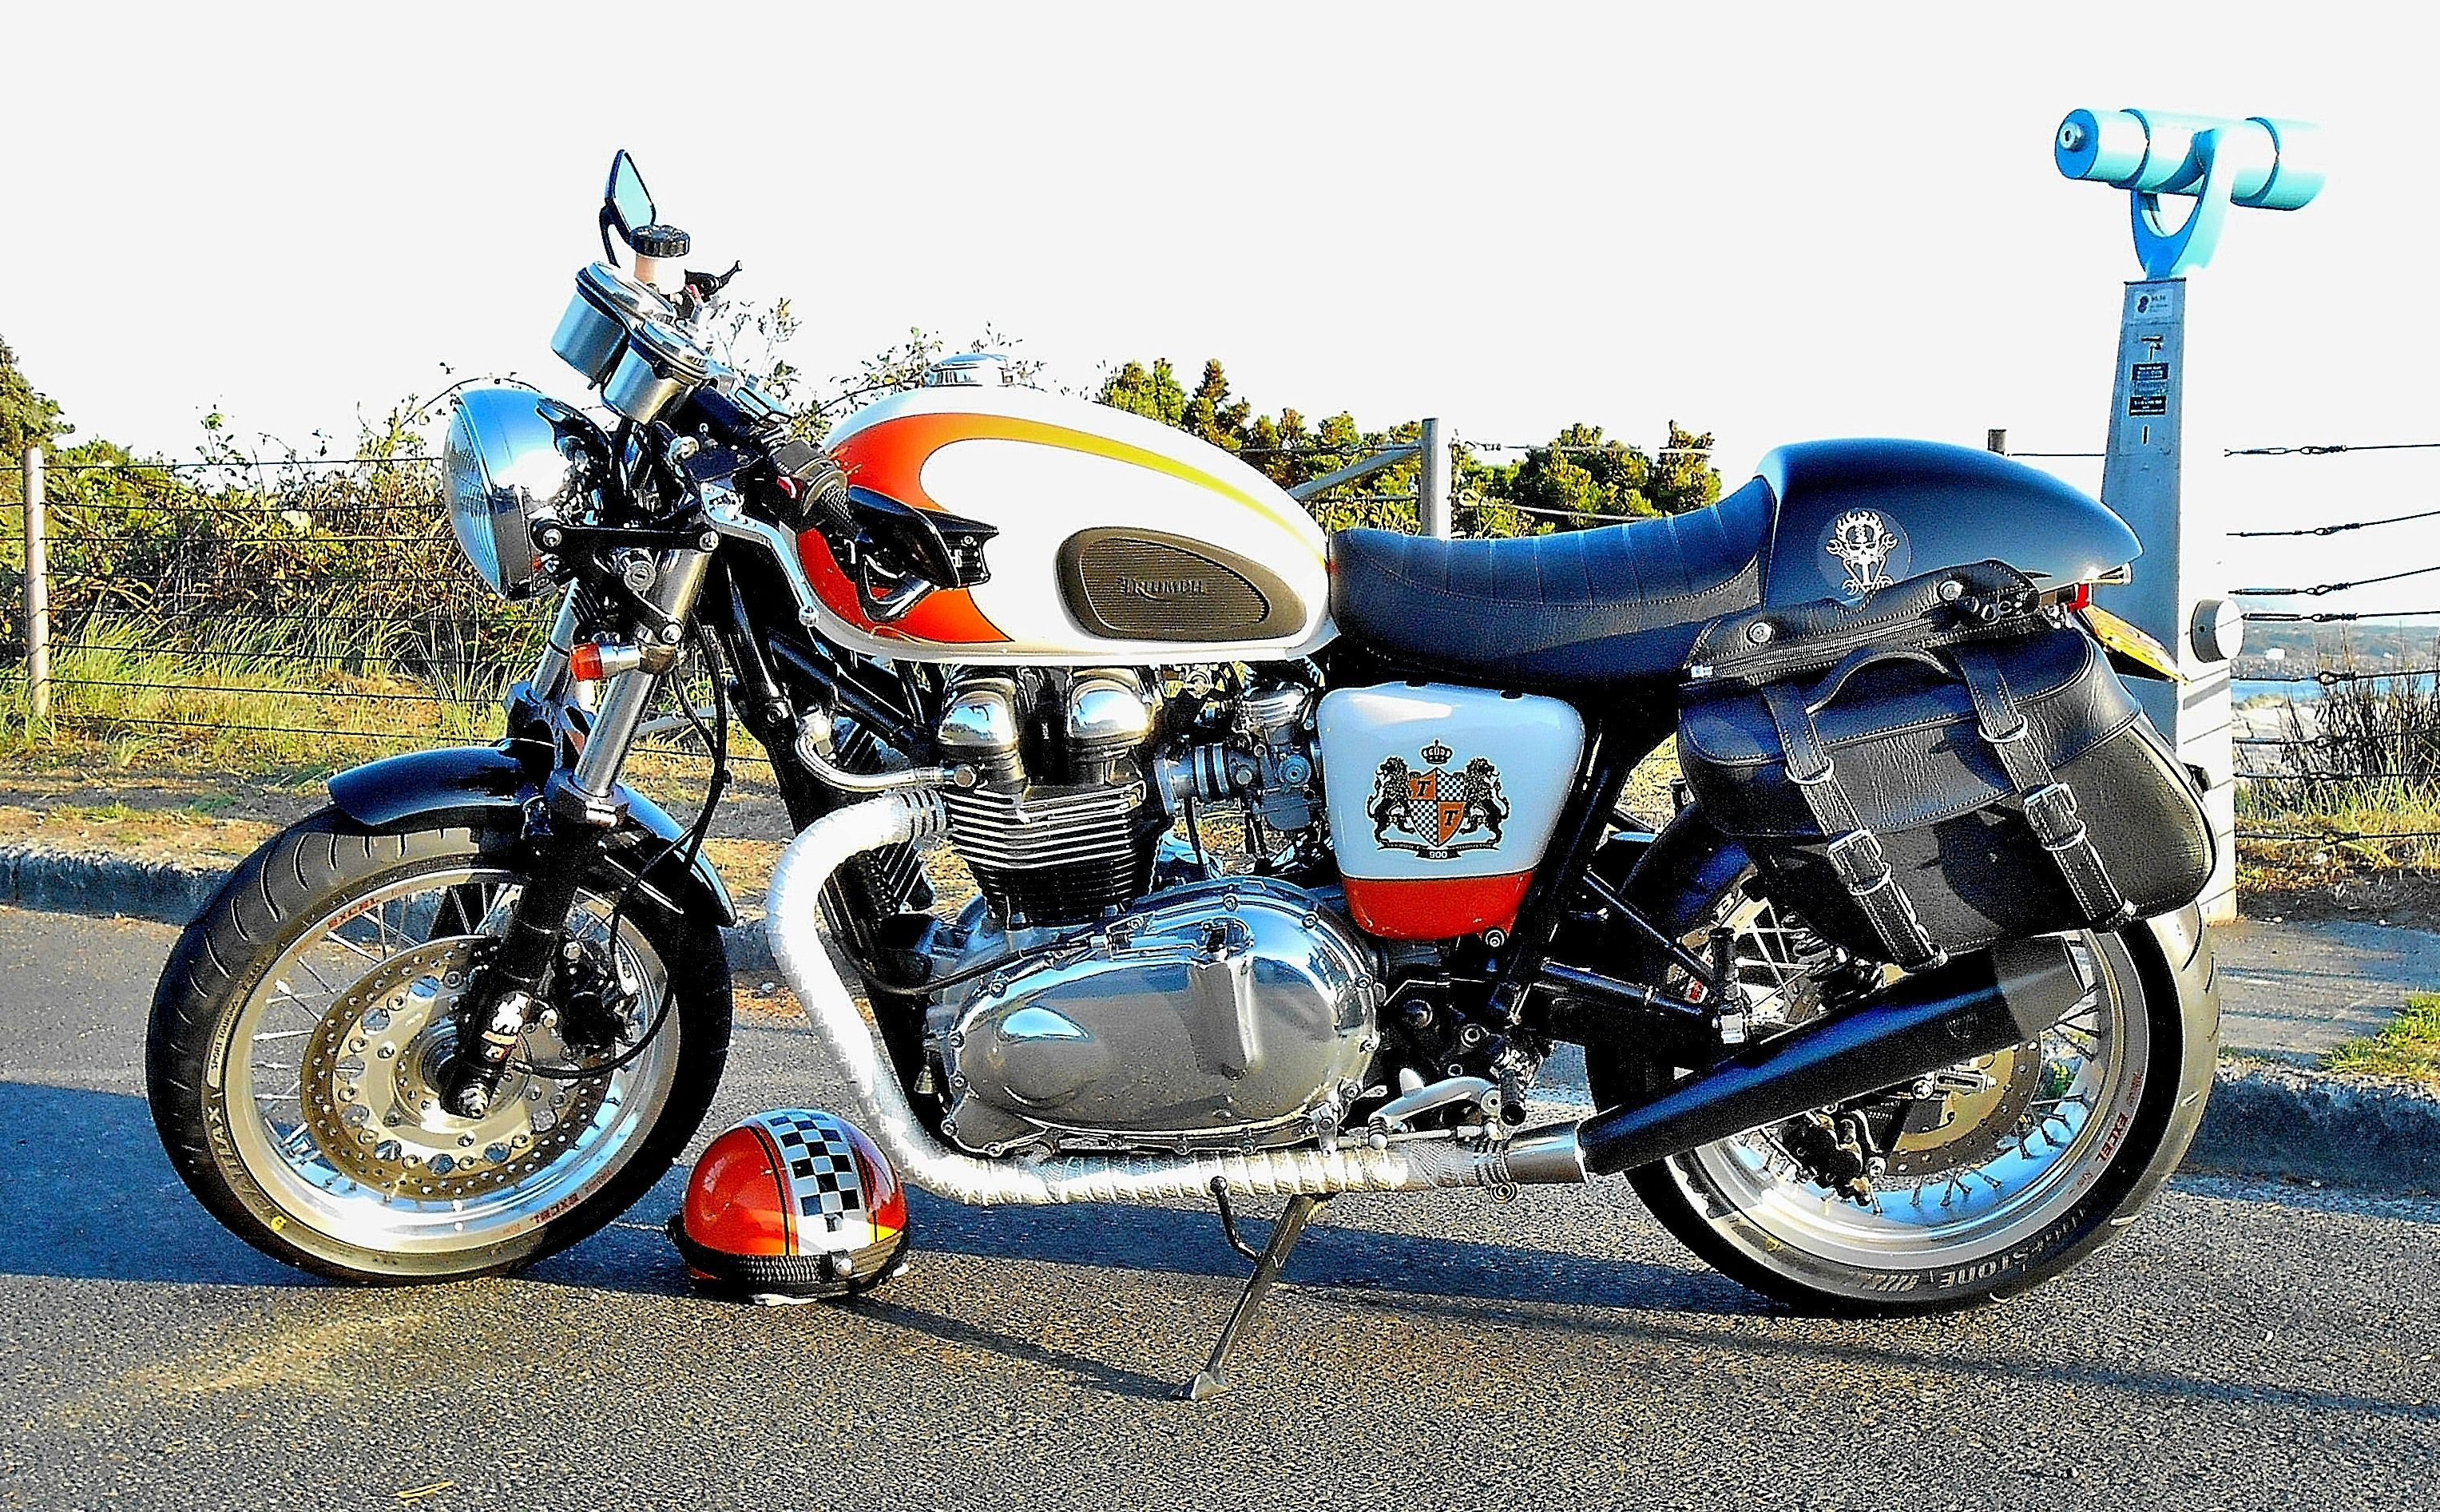 medium resolution of thruxton with saddlebags added for light touring